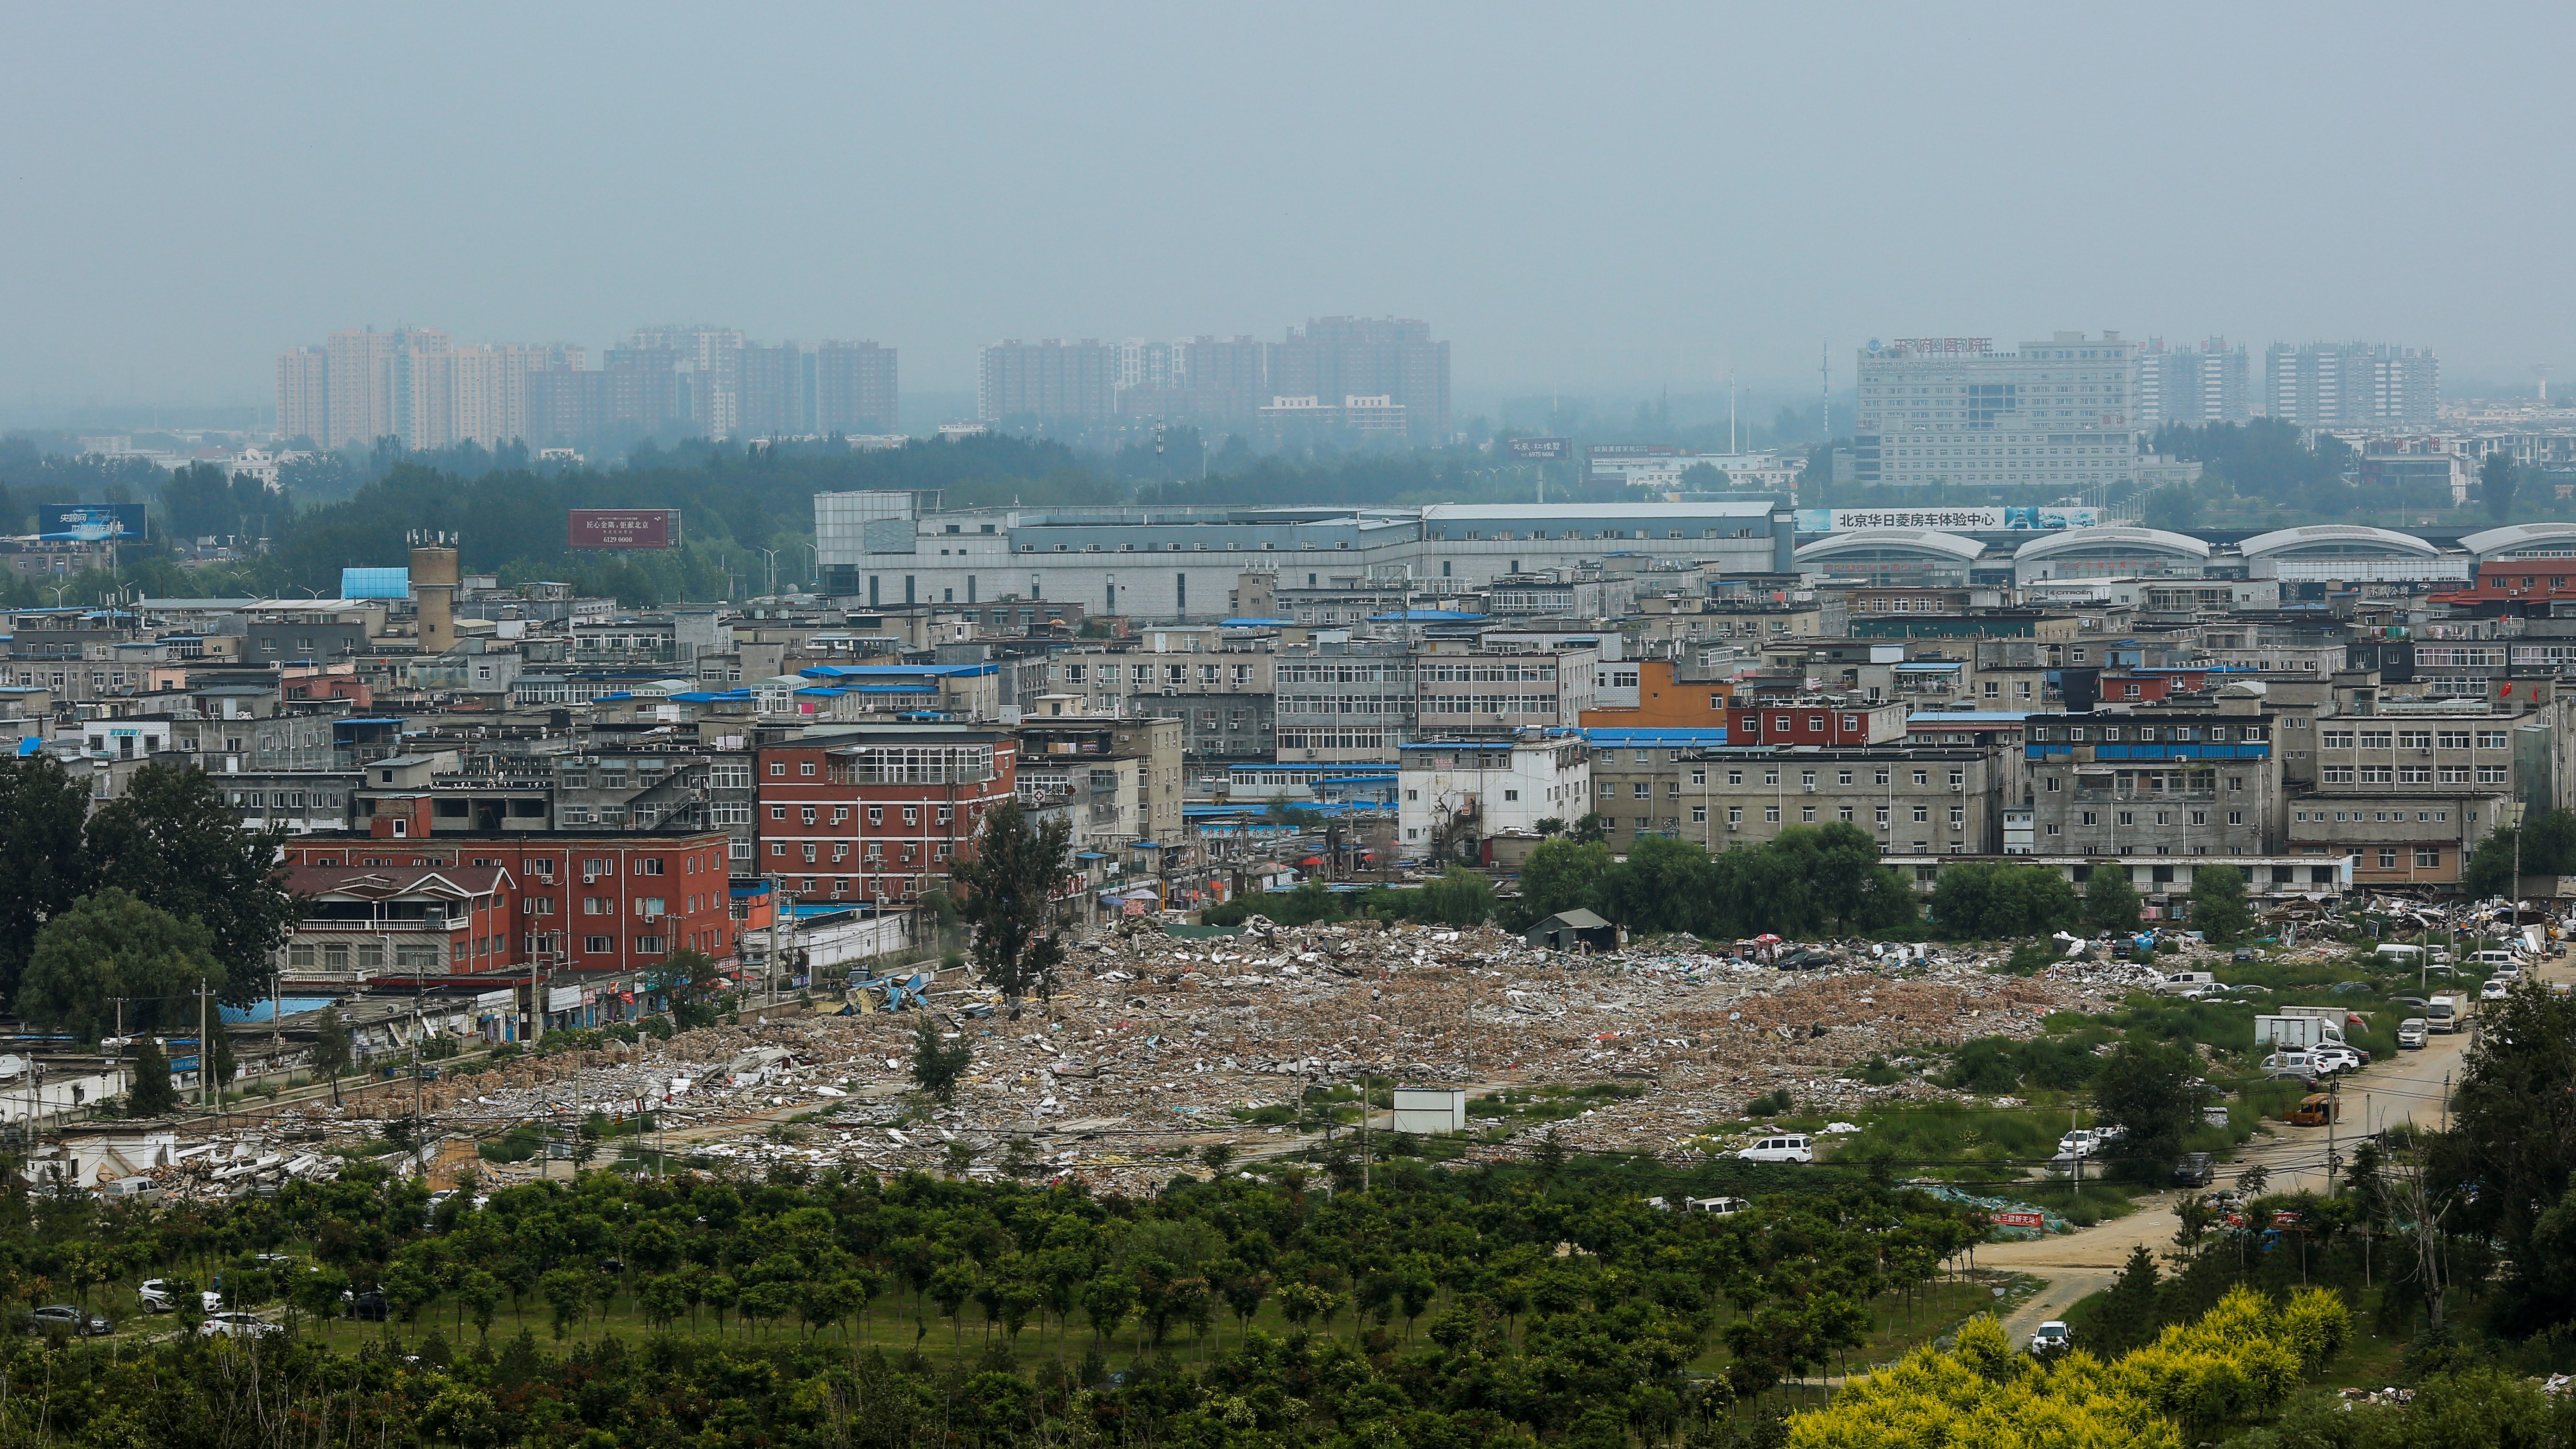 Debris covers the ground where former migrant dwellings used to stand at the outskirts of Beijing, China, August 8, 2017.  Picture taken August 8, 2017.  REUTERS/Thomas Peter - RC1F111C1420